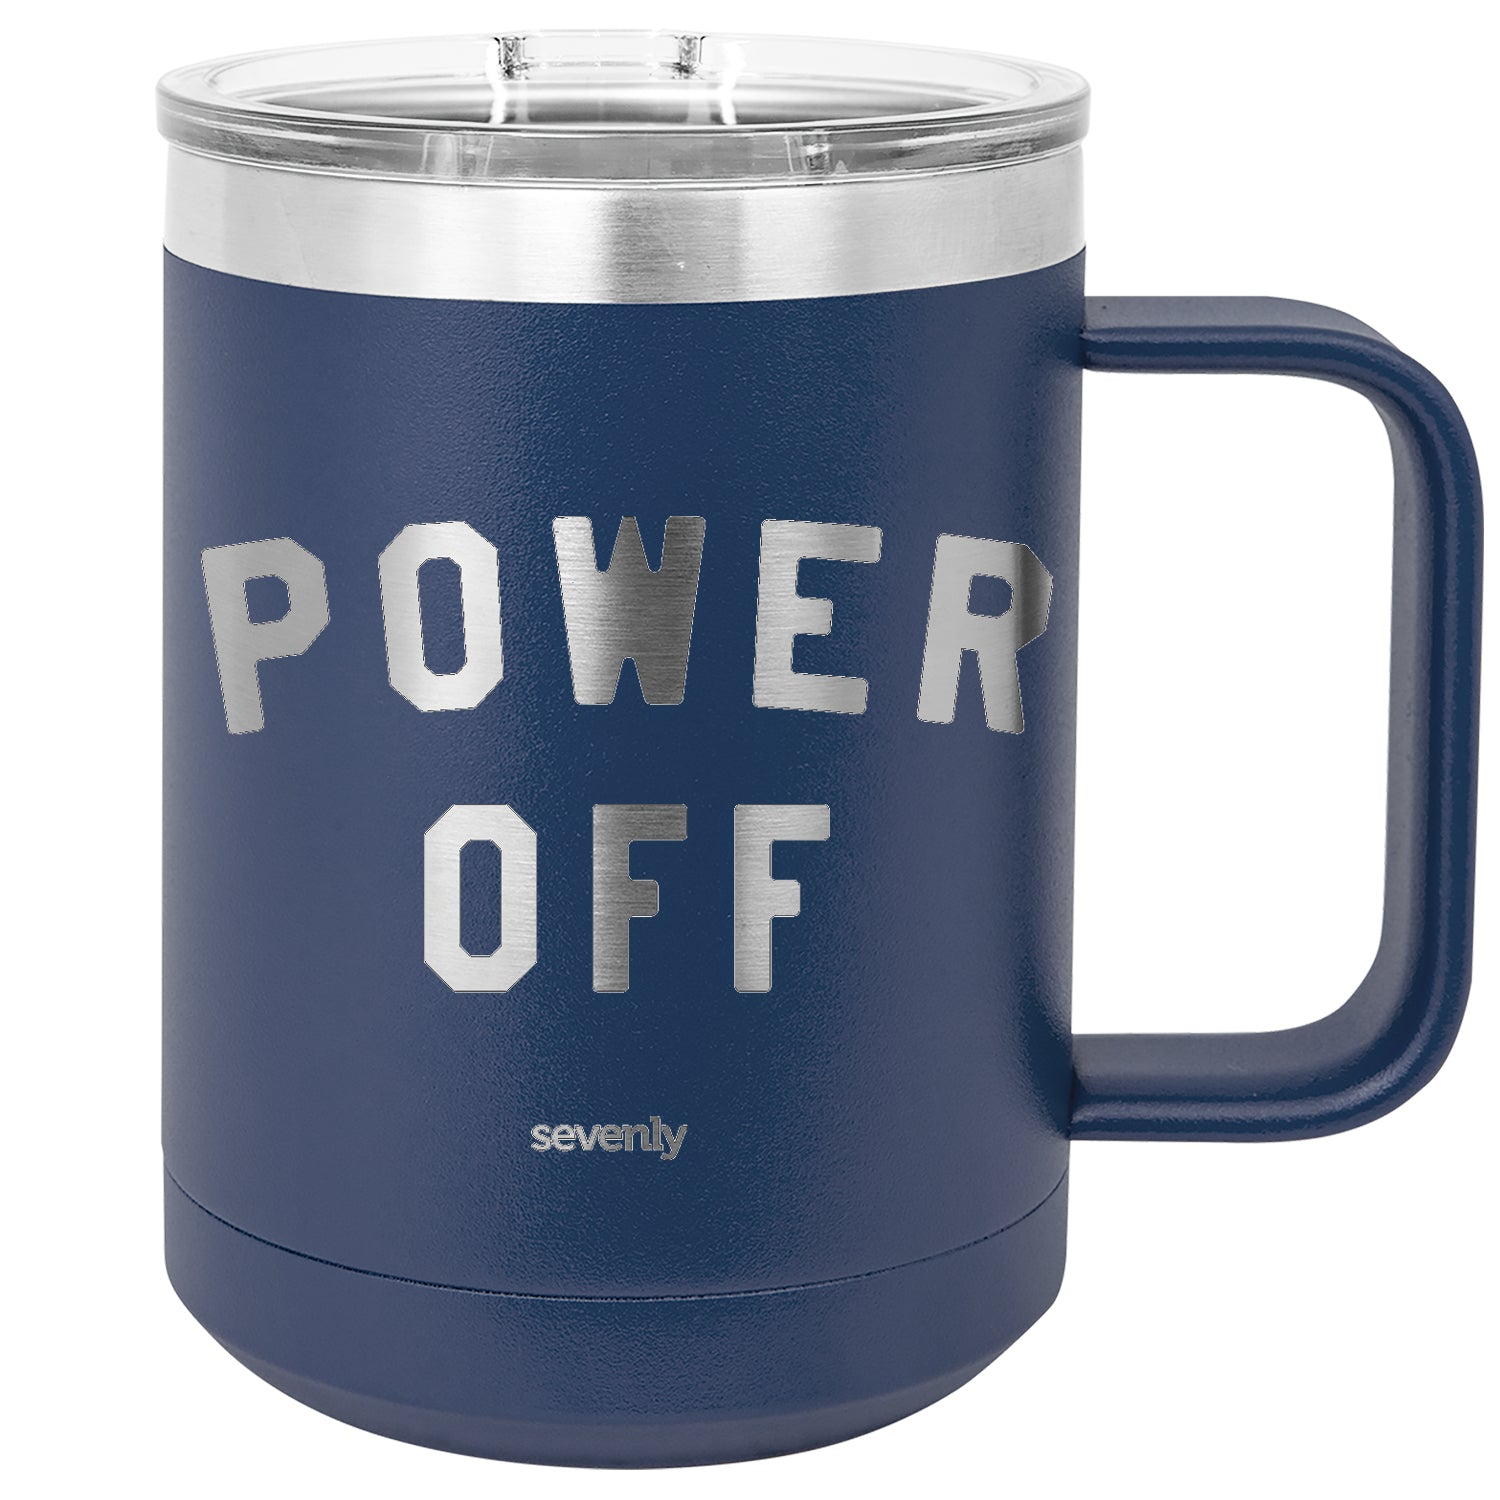 POWER OFF Insulated Mug Drinkware